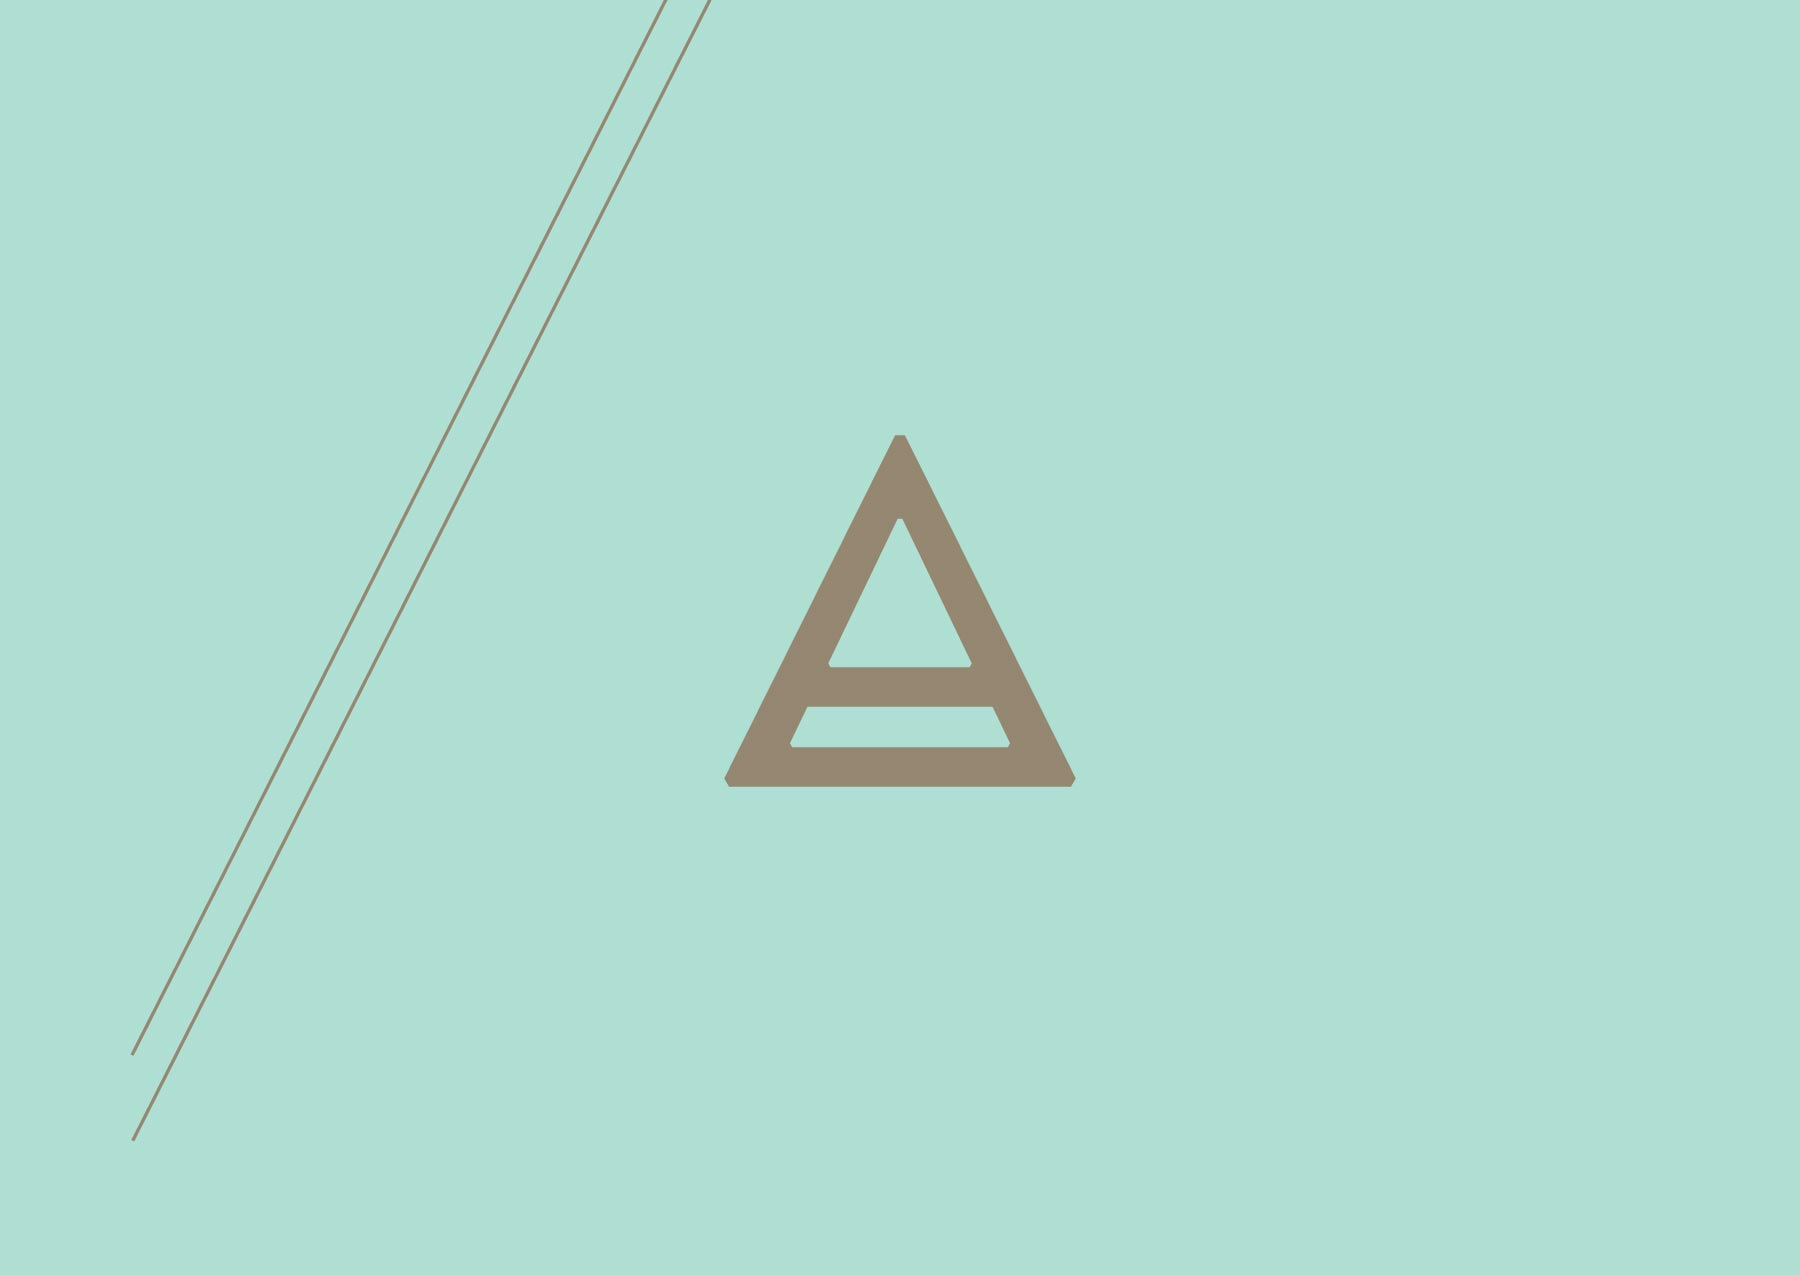 This Old Attic logo icon, designed by Lisa Furze